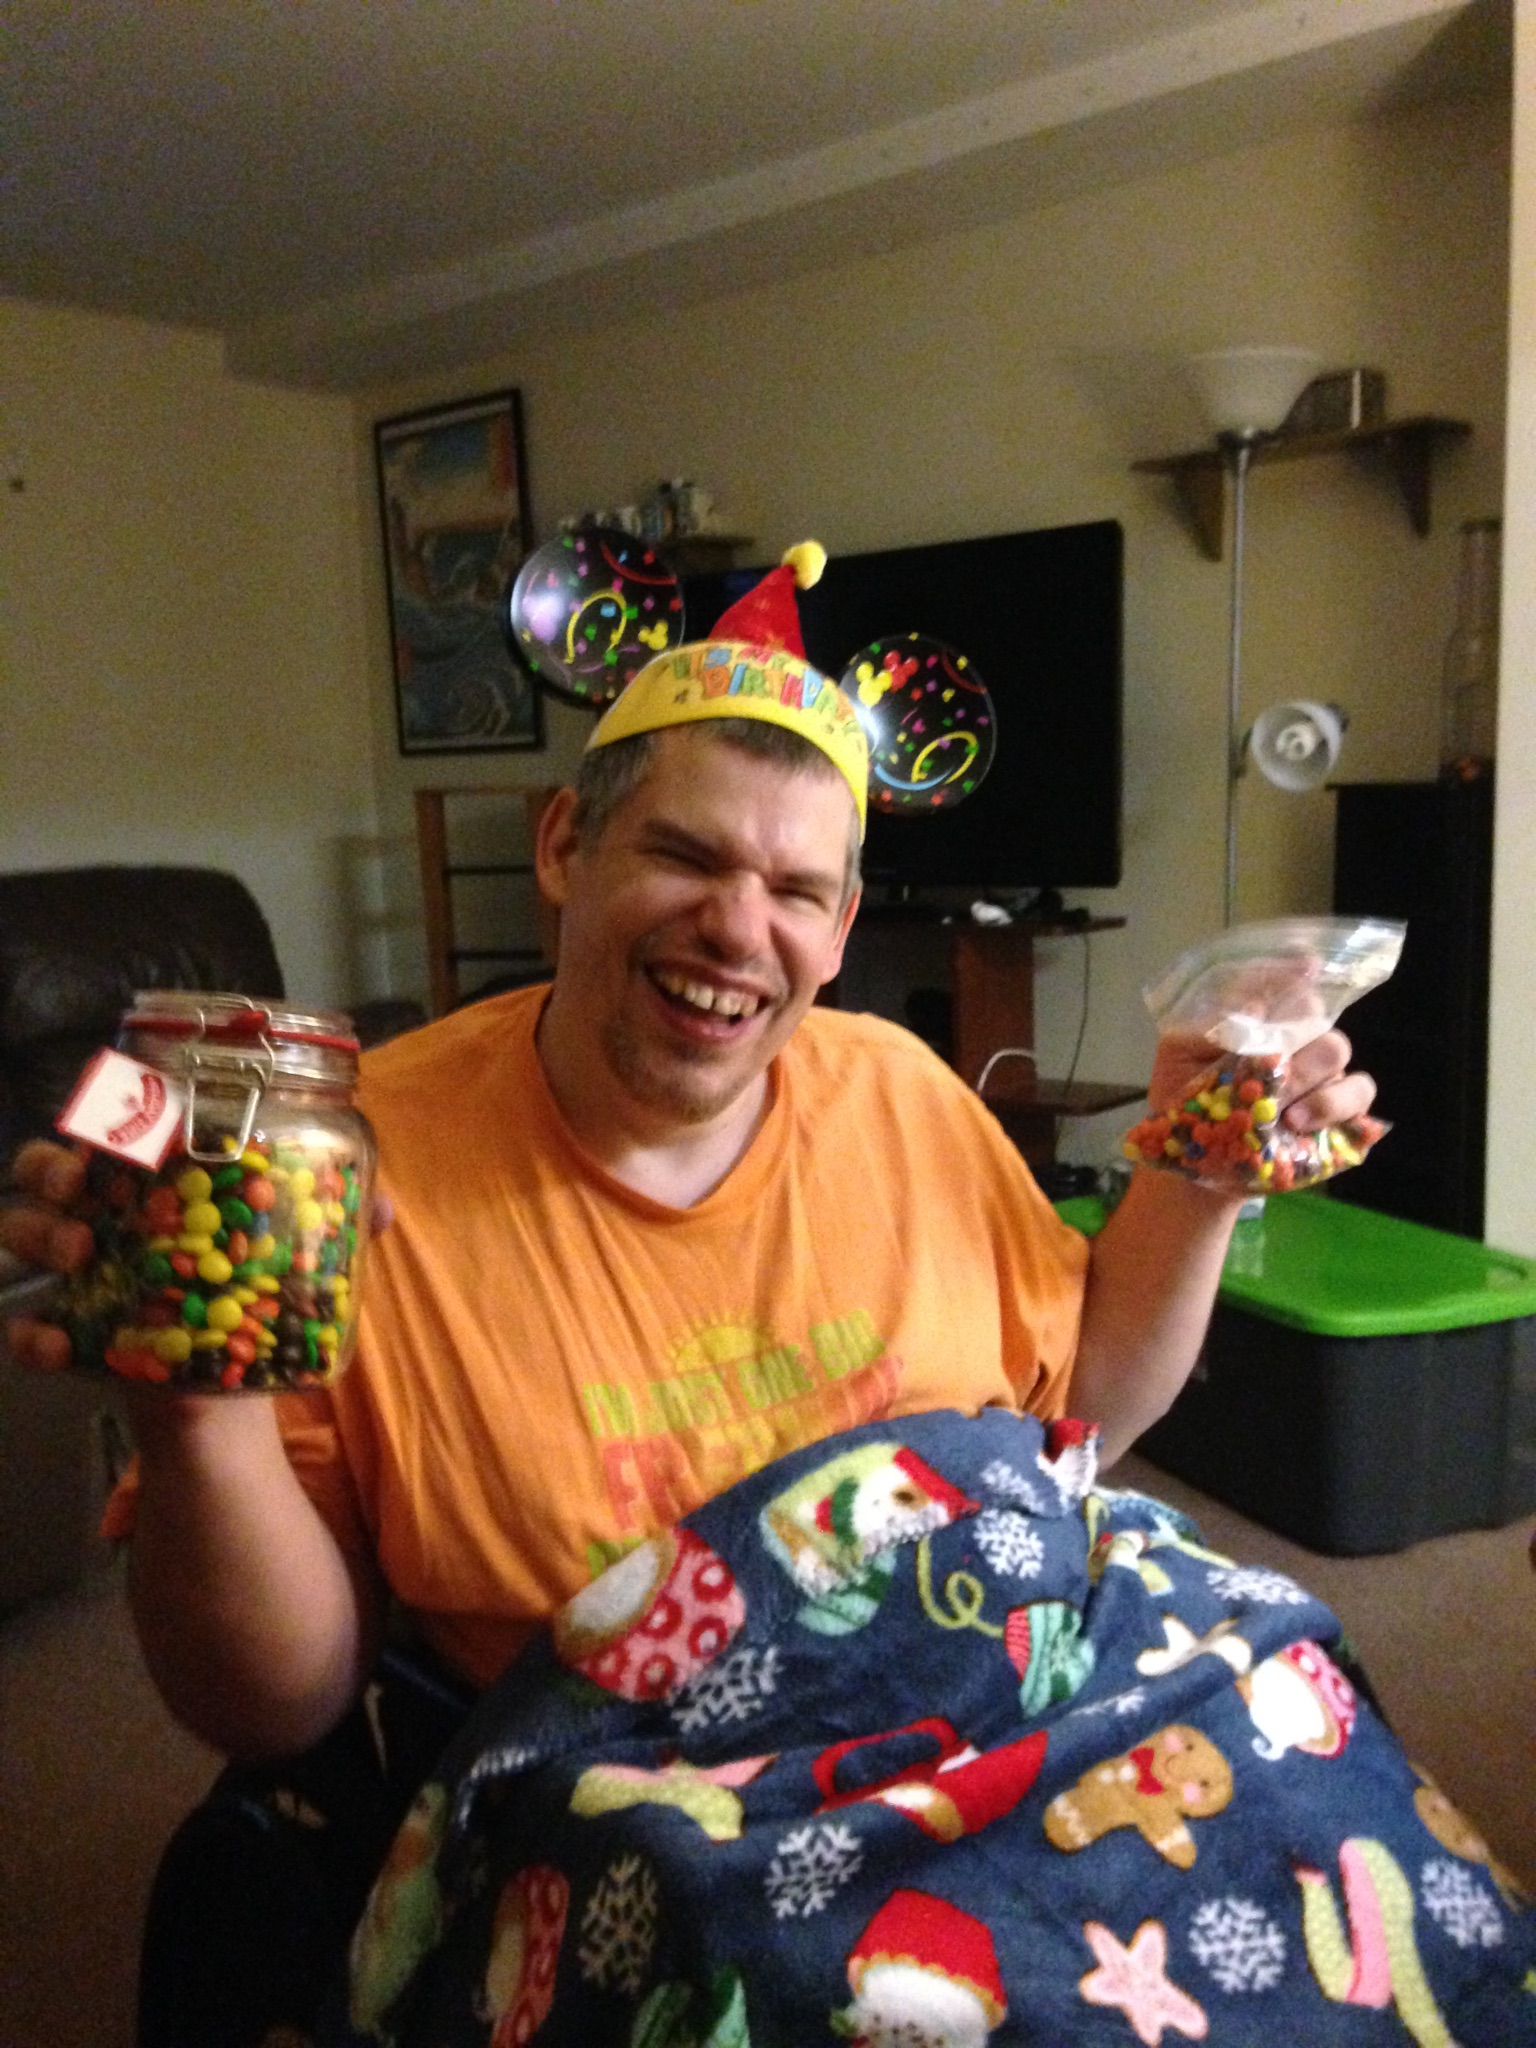 Mandy's friend Bill holding a jar of Reese's Pieces and M&M's